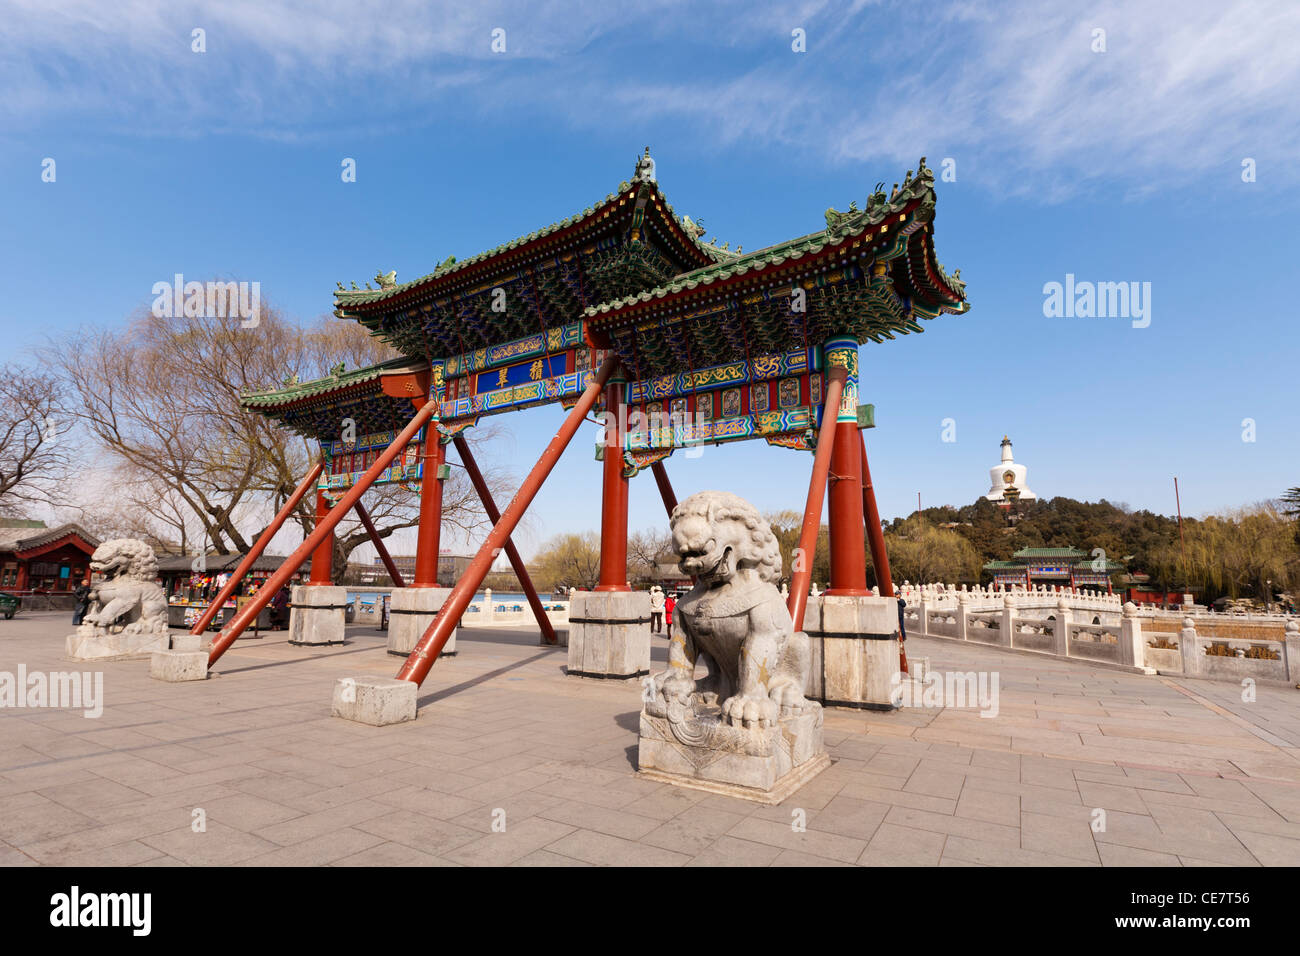 Entrance gate at Beihai Park Beijing China, with the White Pagoda in the background. Stock Photo